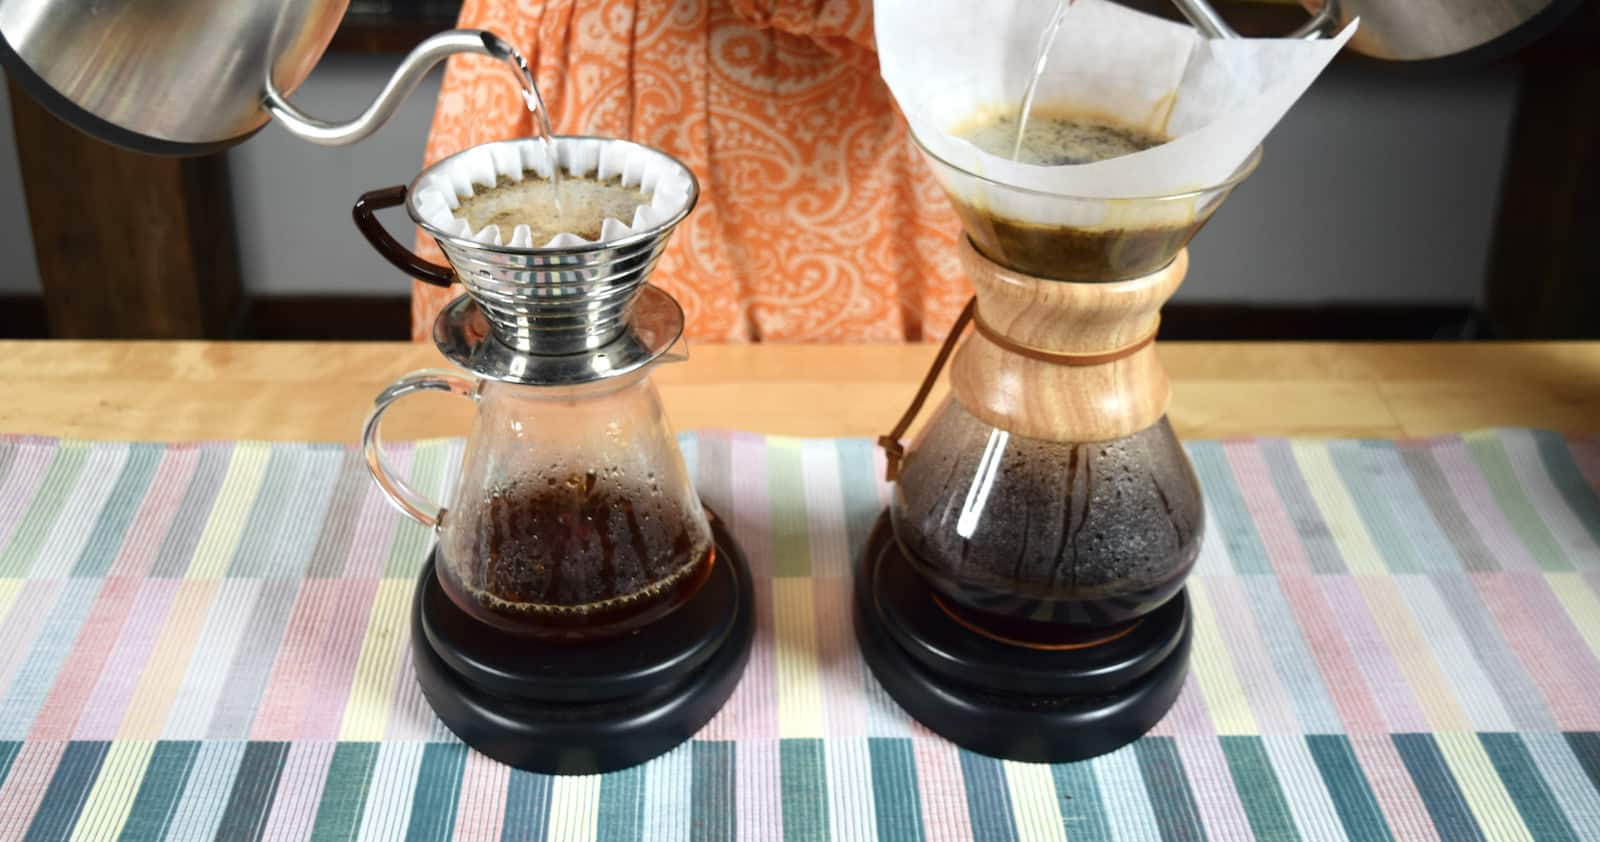 Pouring into Kalita and Chemex